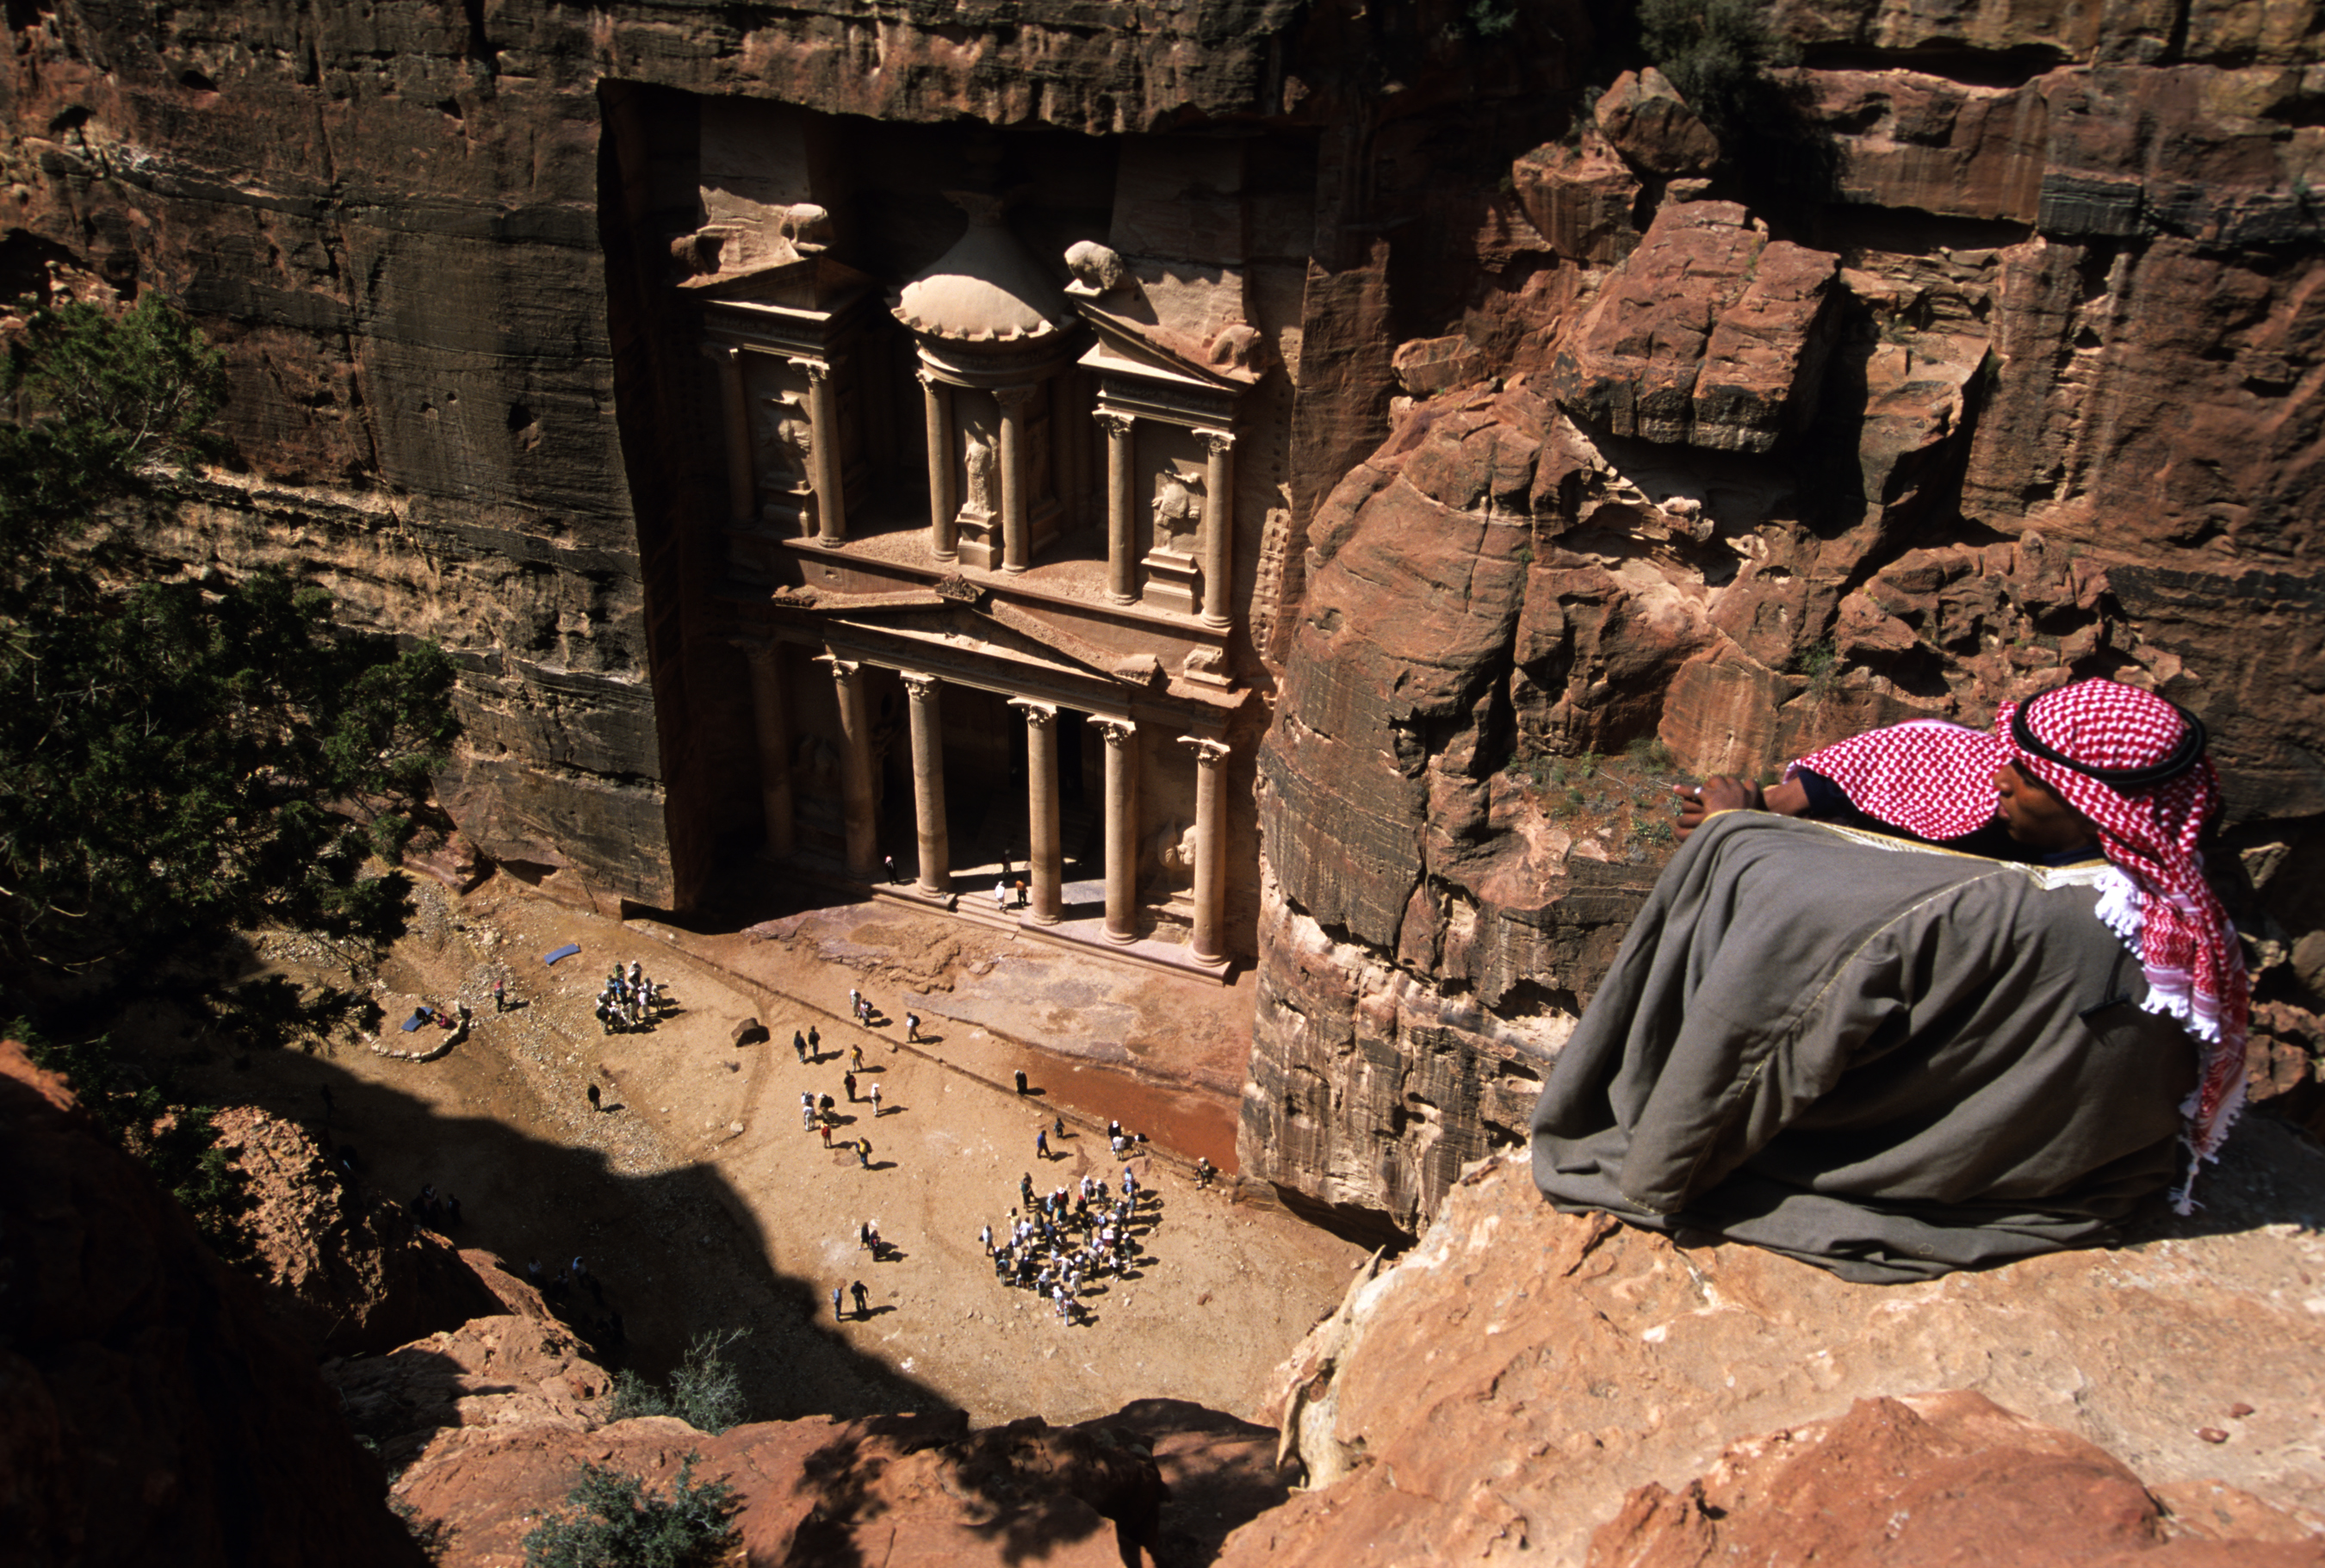 http://downtowntraveler.com/wp-content/uploads/2011/04/Petra-Treasury3.jpg